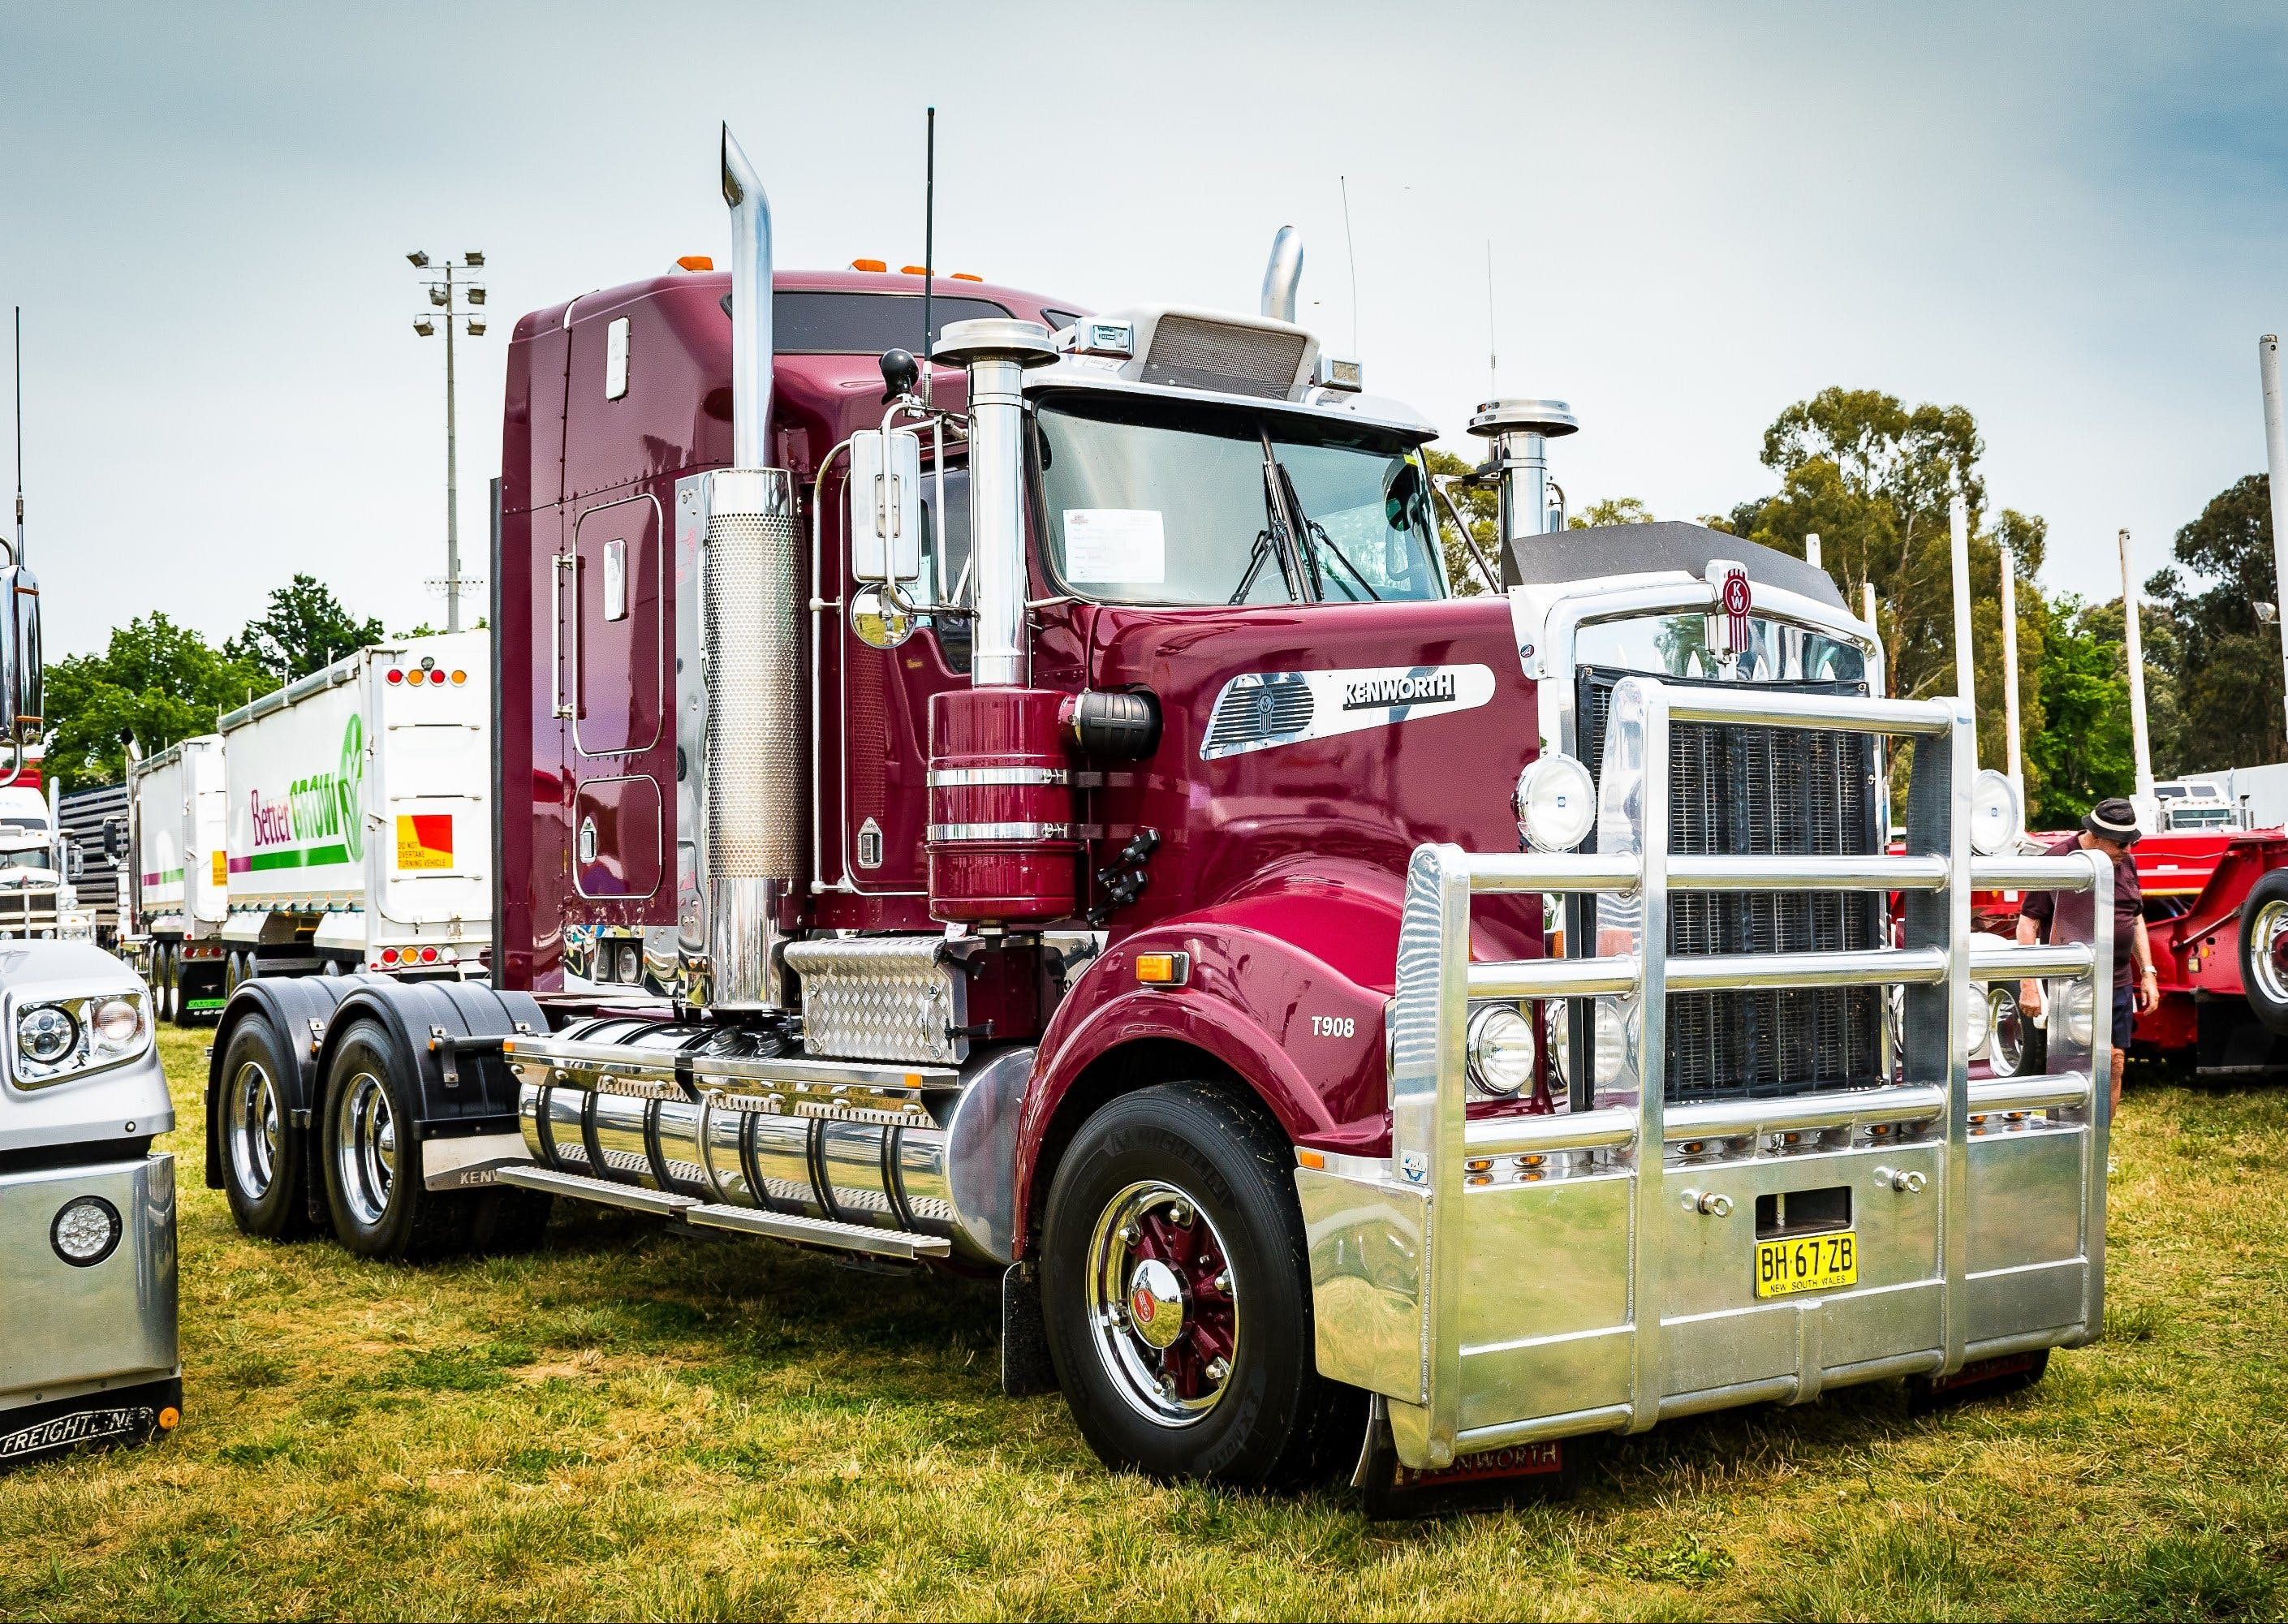 Dane Ballinger Memorial Truck Show - Hotel Accommodation